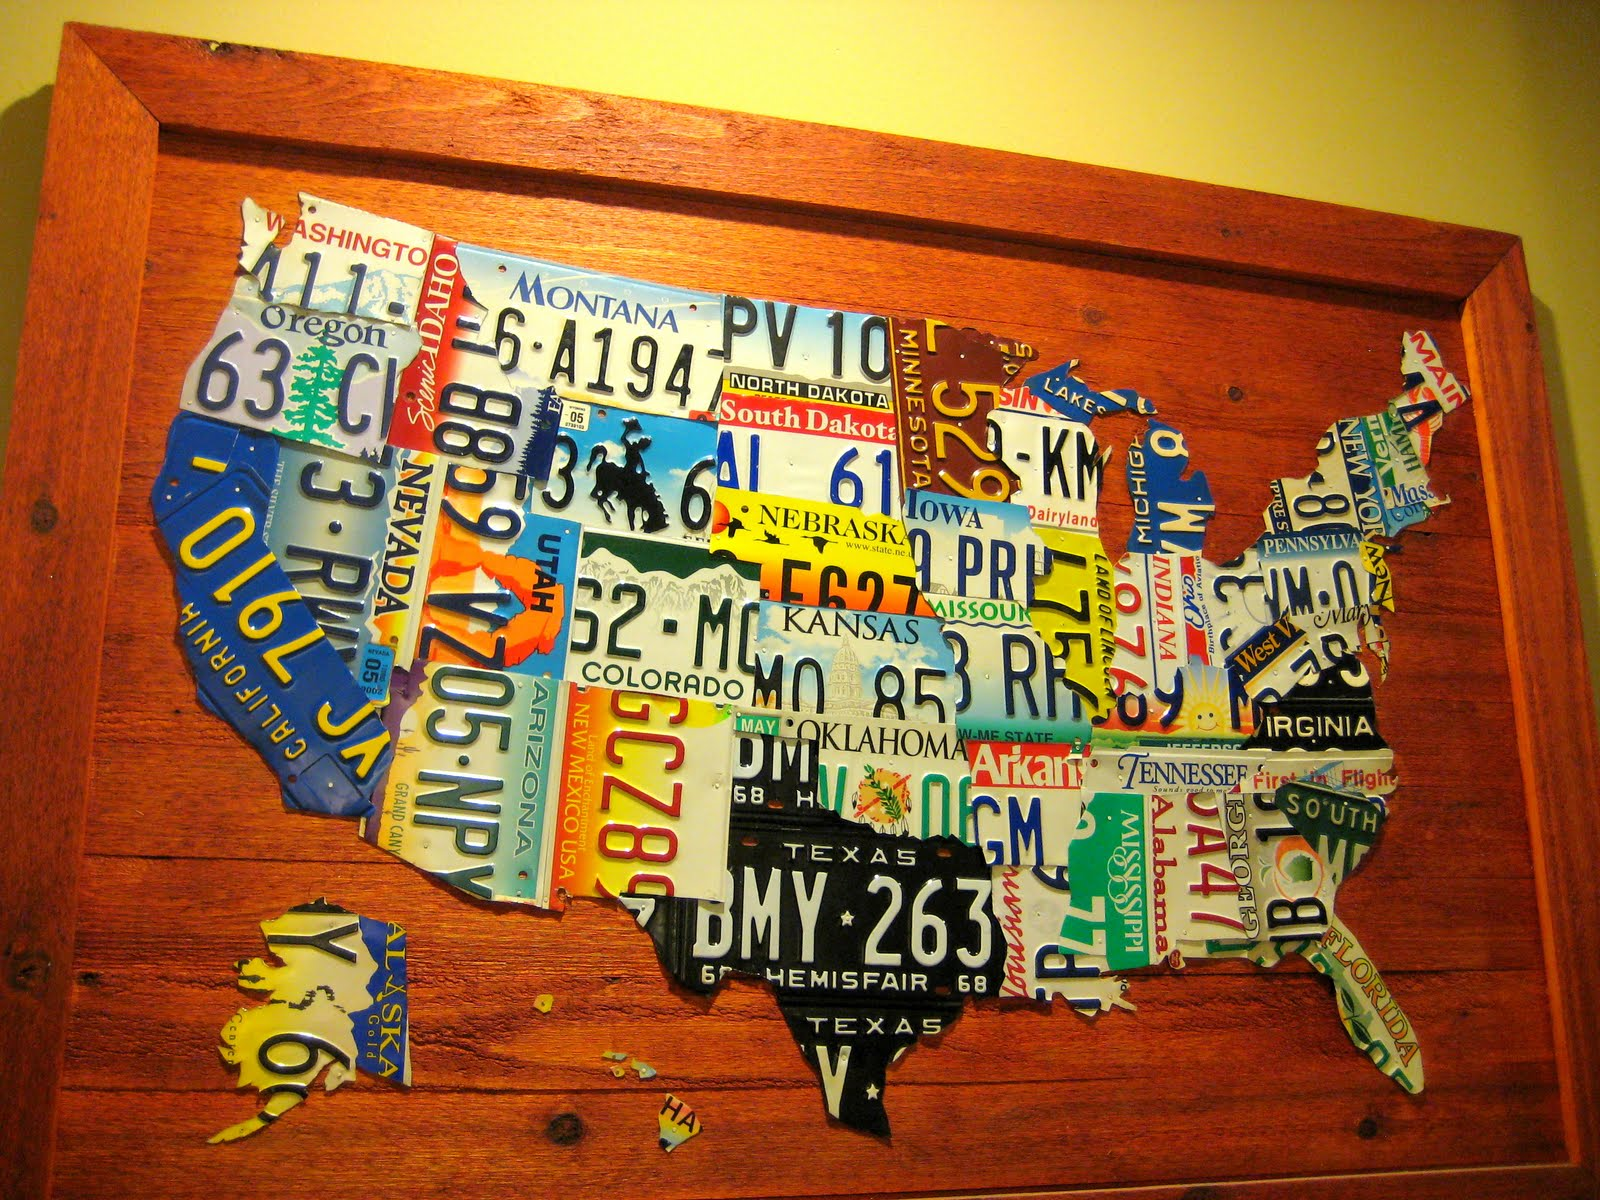 Us Map Made Out Of License Plates.Update C R A F T 31 License Plate Map C R A F T